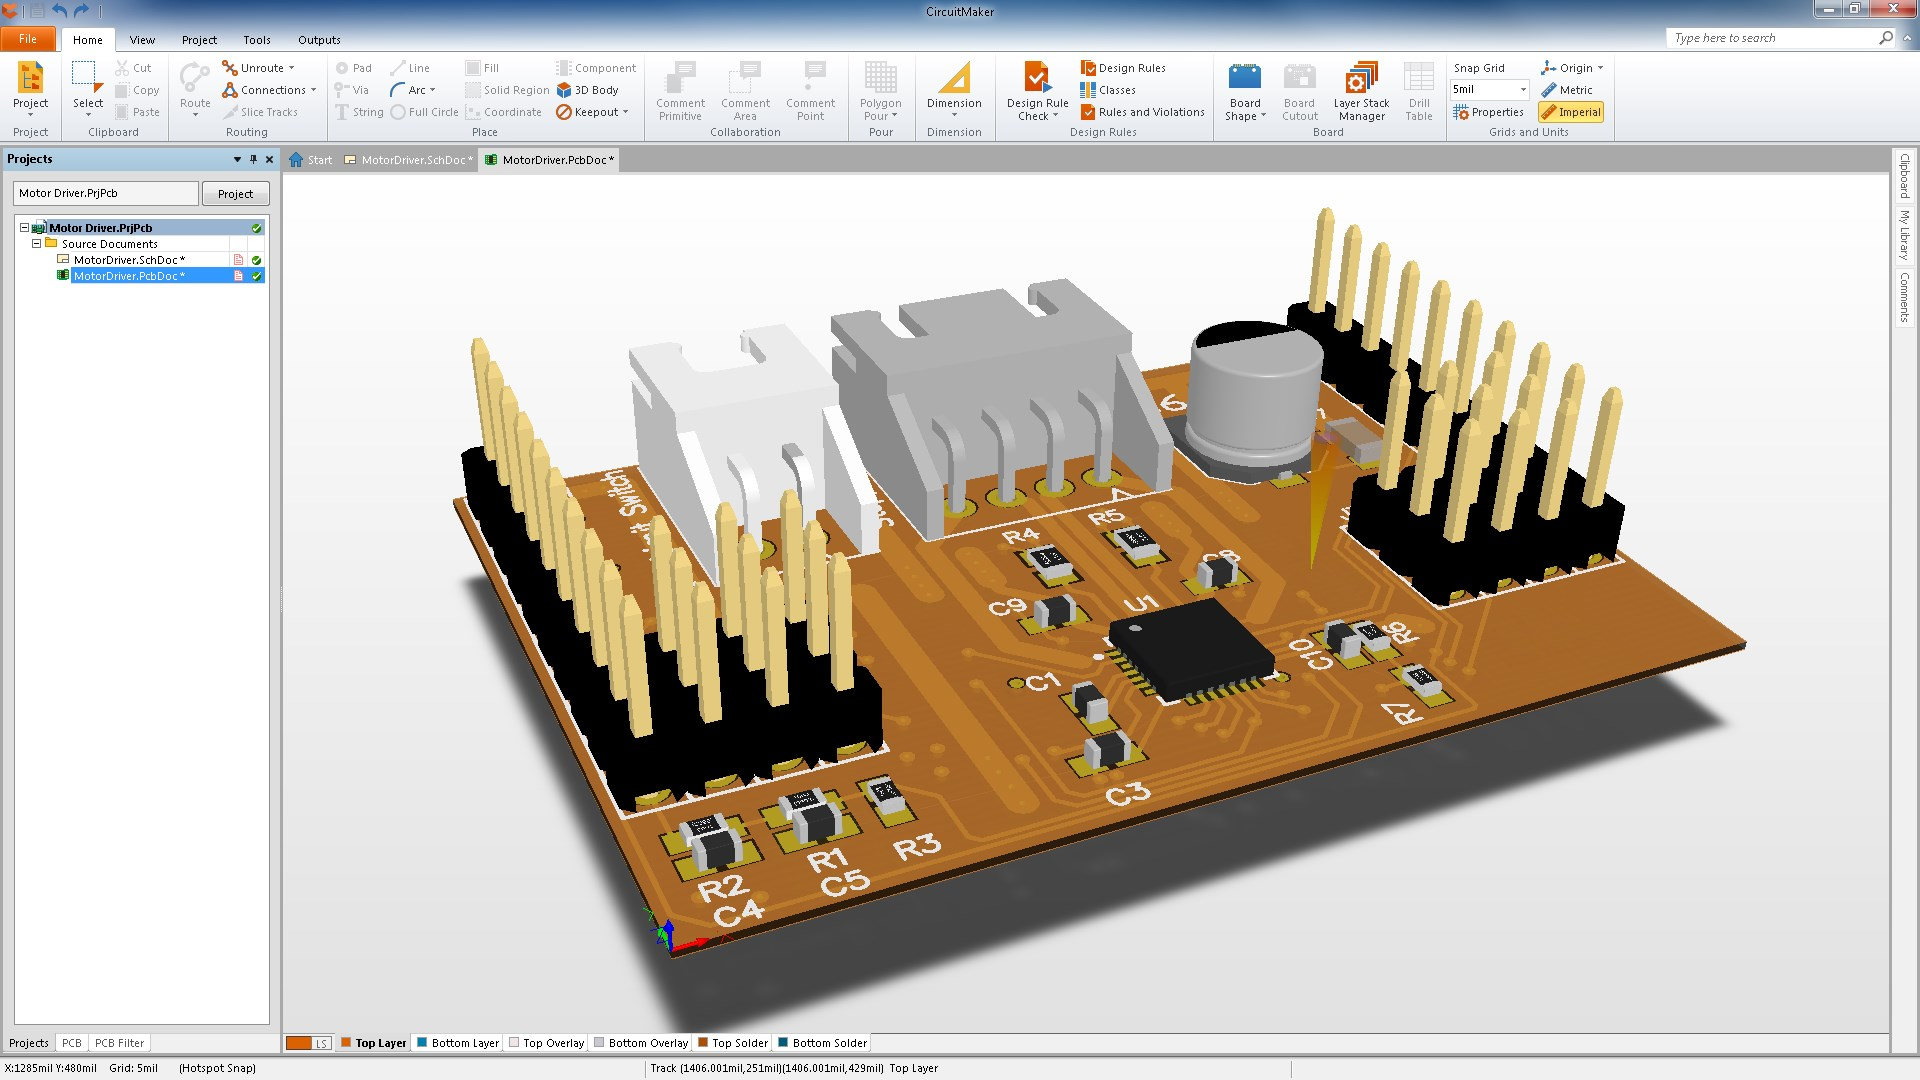 Free Circuitmaker Pcb Tool From Altium Ee Times Design Tools Give Engineers An Edge In Online Printed Circuit Board Click Here